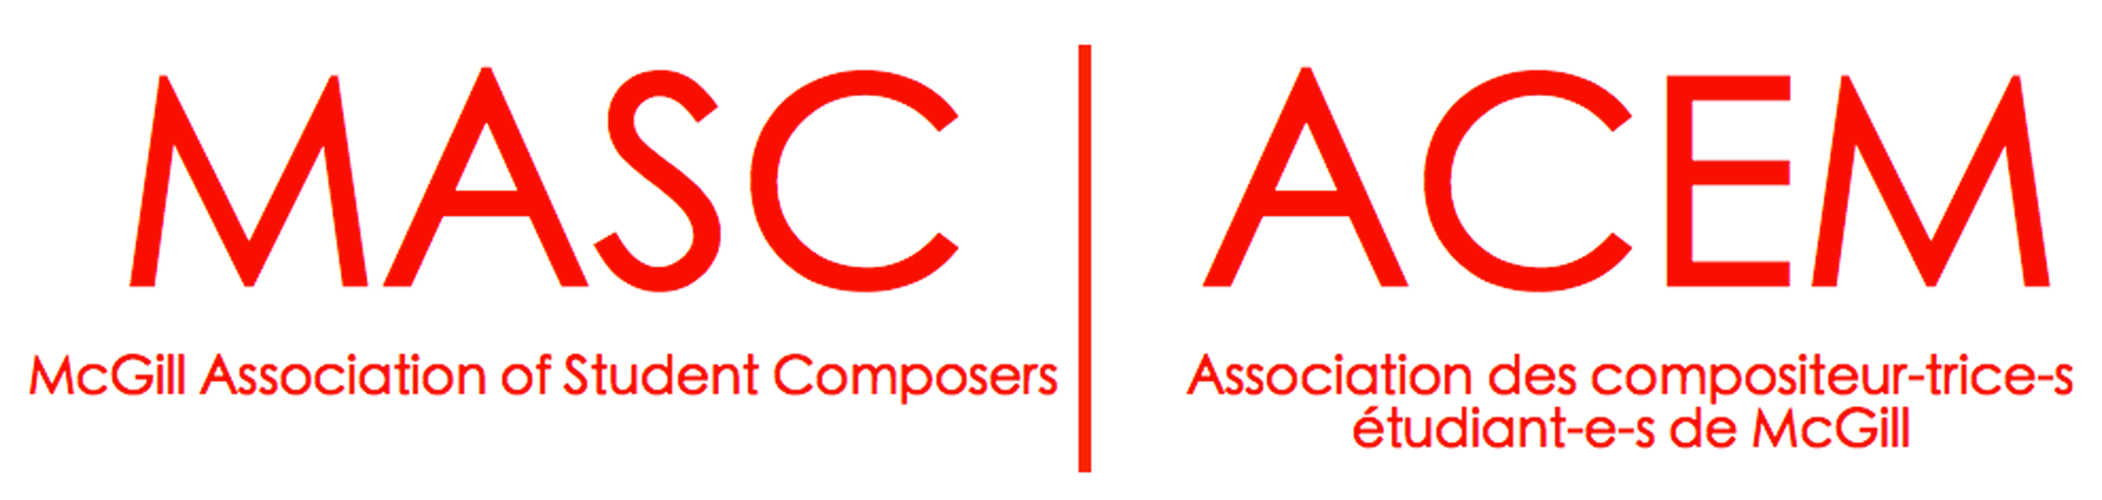 Logo de l'Association des compositeurs étudiants de McGill